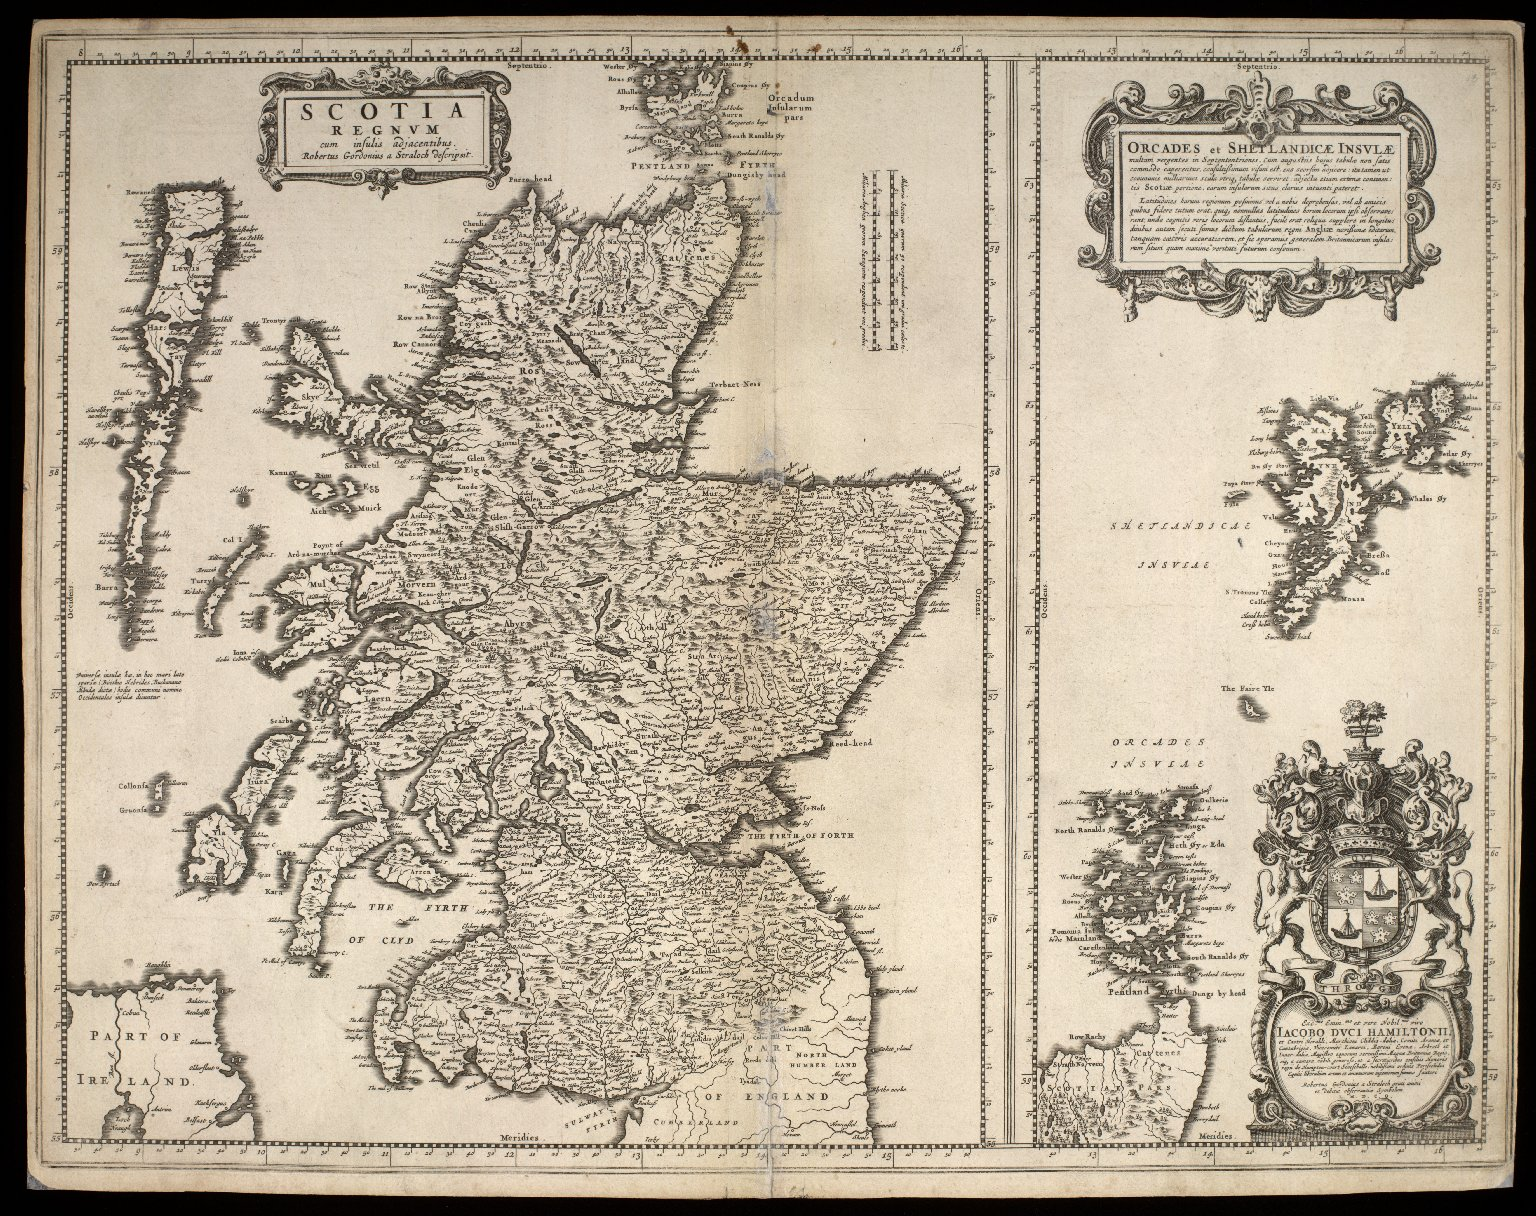 Atlas Scoticus, or a Description of Scotland Ancient and Modern. [013 of 259]